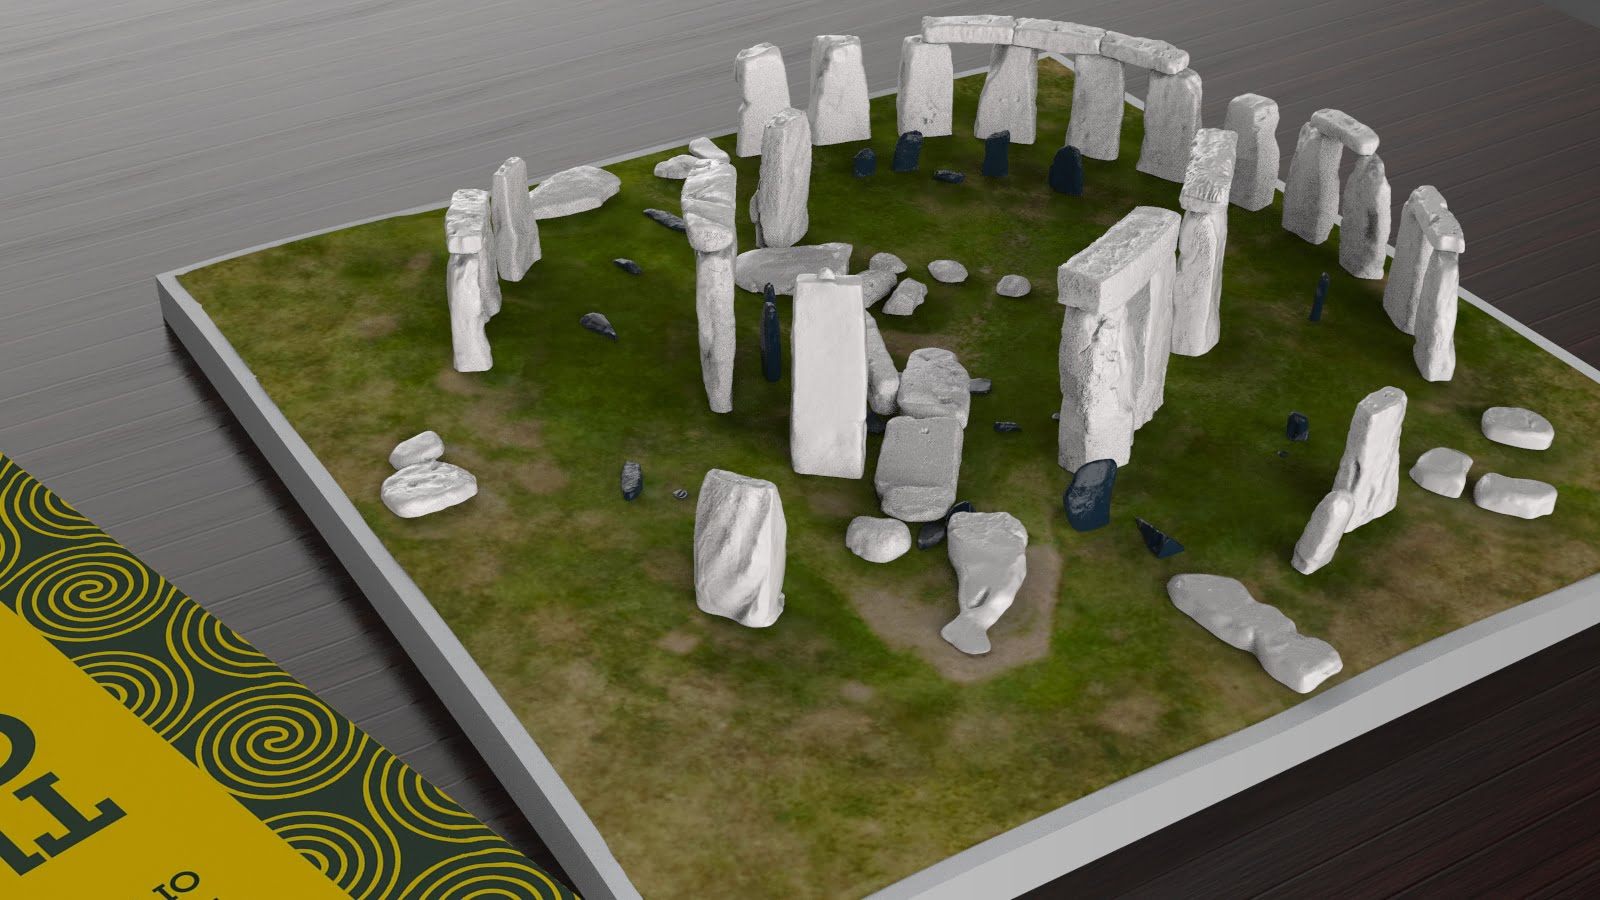 Buy Stonehenge Models: Stonehenge model replica at 200th scale on plain grass with parch marks of missing stones off white sarsens and iron blue bluestones 195 x 195 mm or 7 x 7 inches square 001  - 200th scale pick n mix -